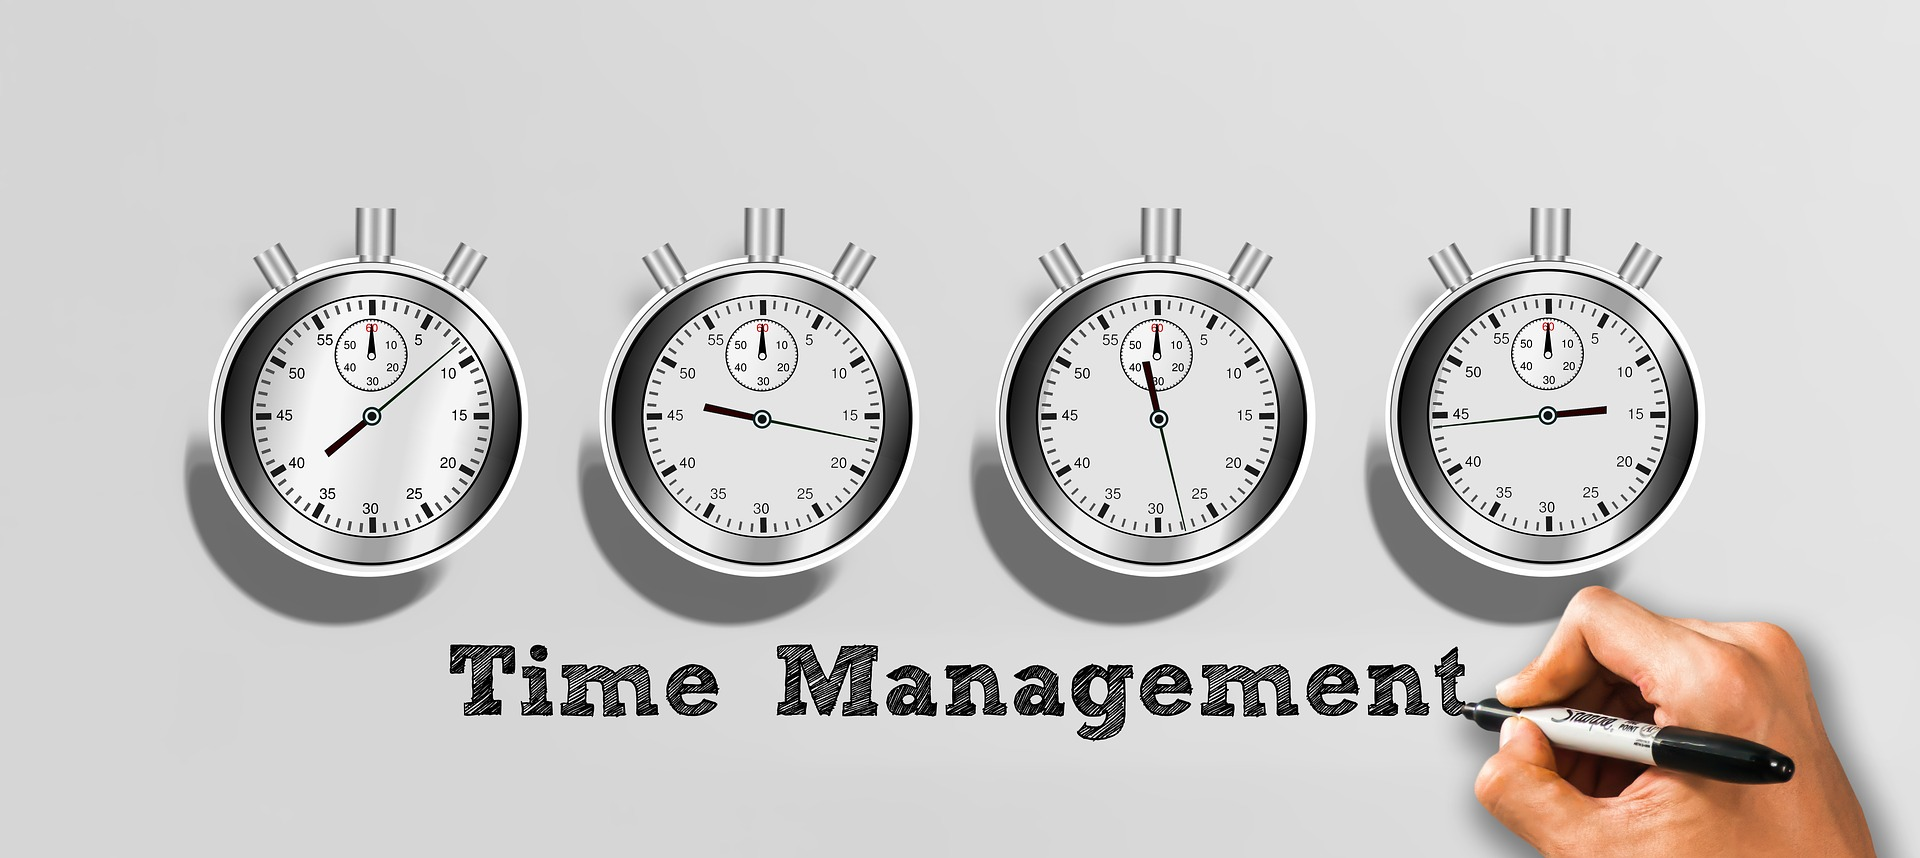 10 Tips To Help You Master The Art Of Time Management